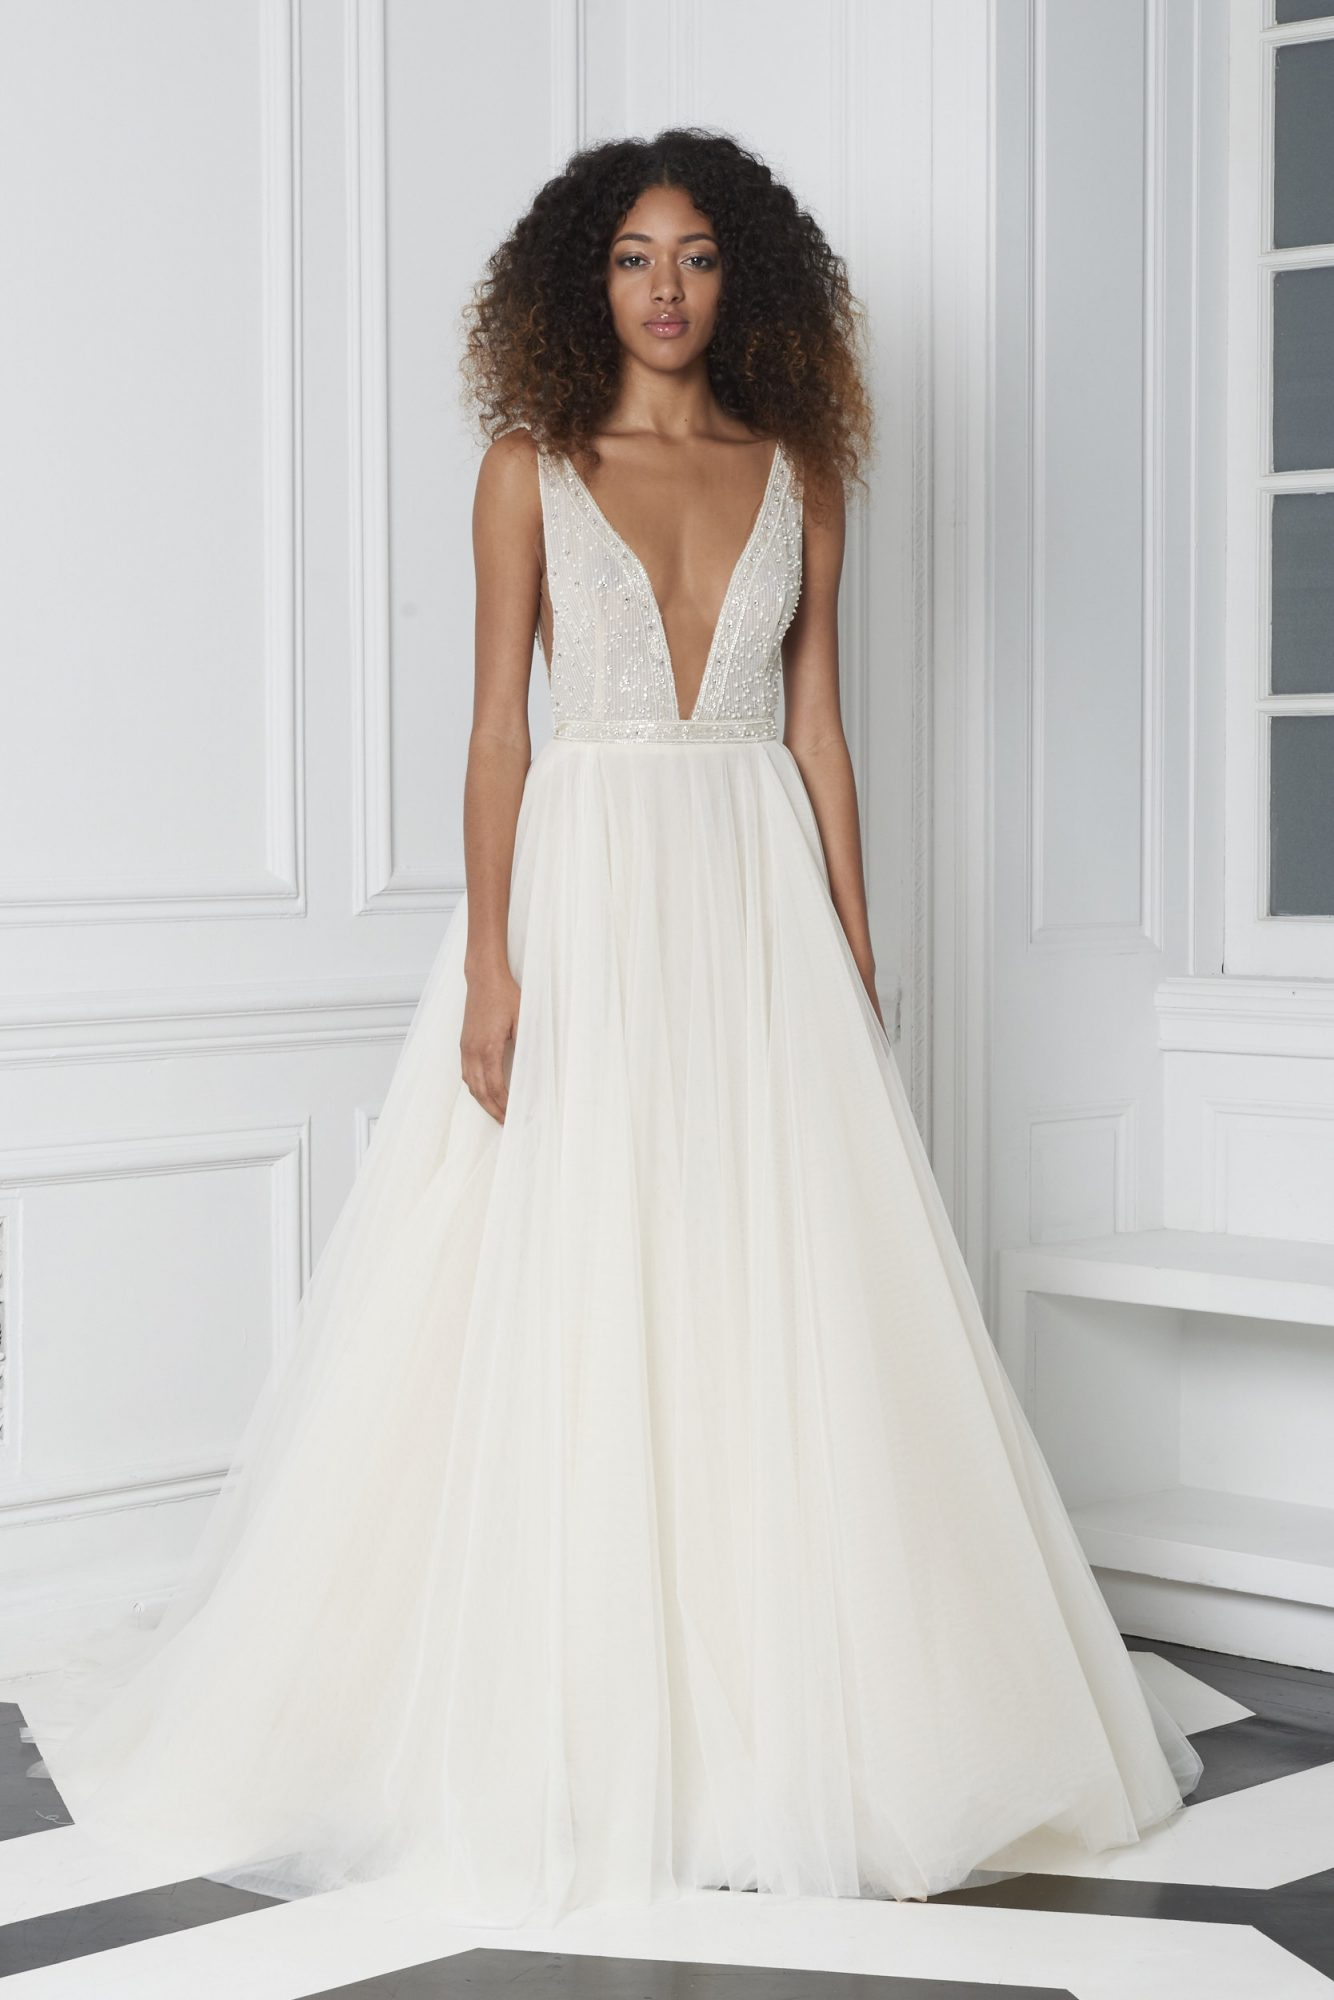 Monique Lhuillier Bliss Fall 2018 A-Line Wedding Dress with Plunging Neckline and Beaded Bodice